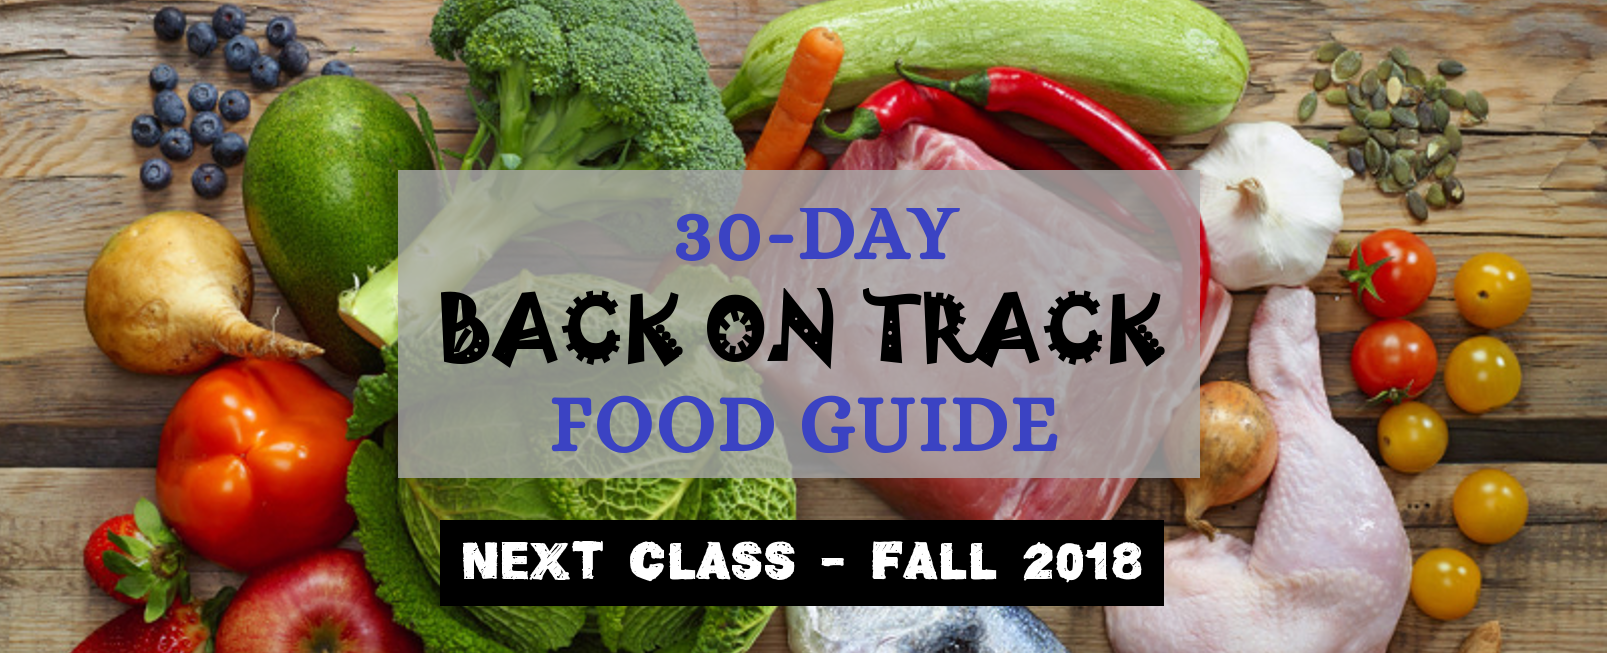 Next 30-Day Food Guide & Class Coming Fall 2018